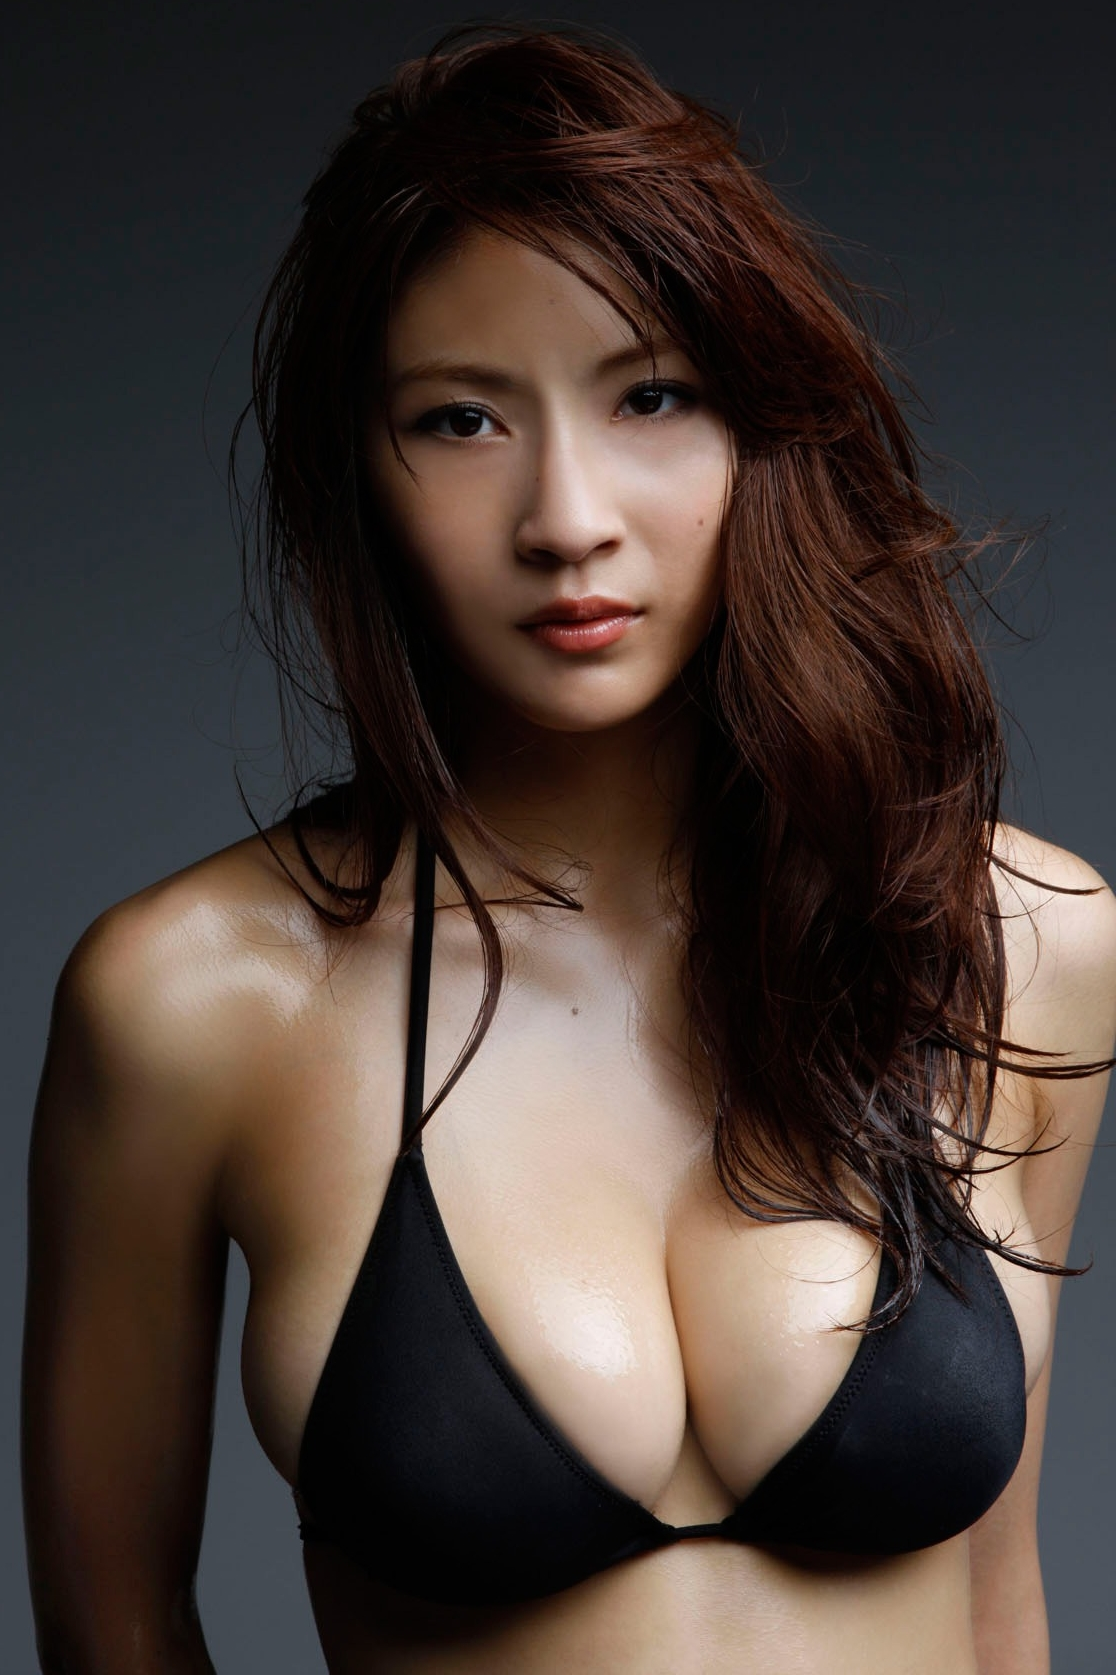 Dominate asian girls